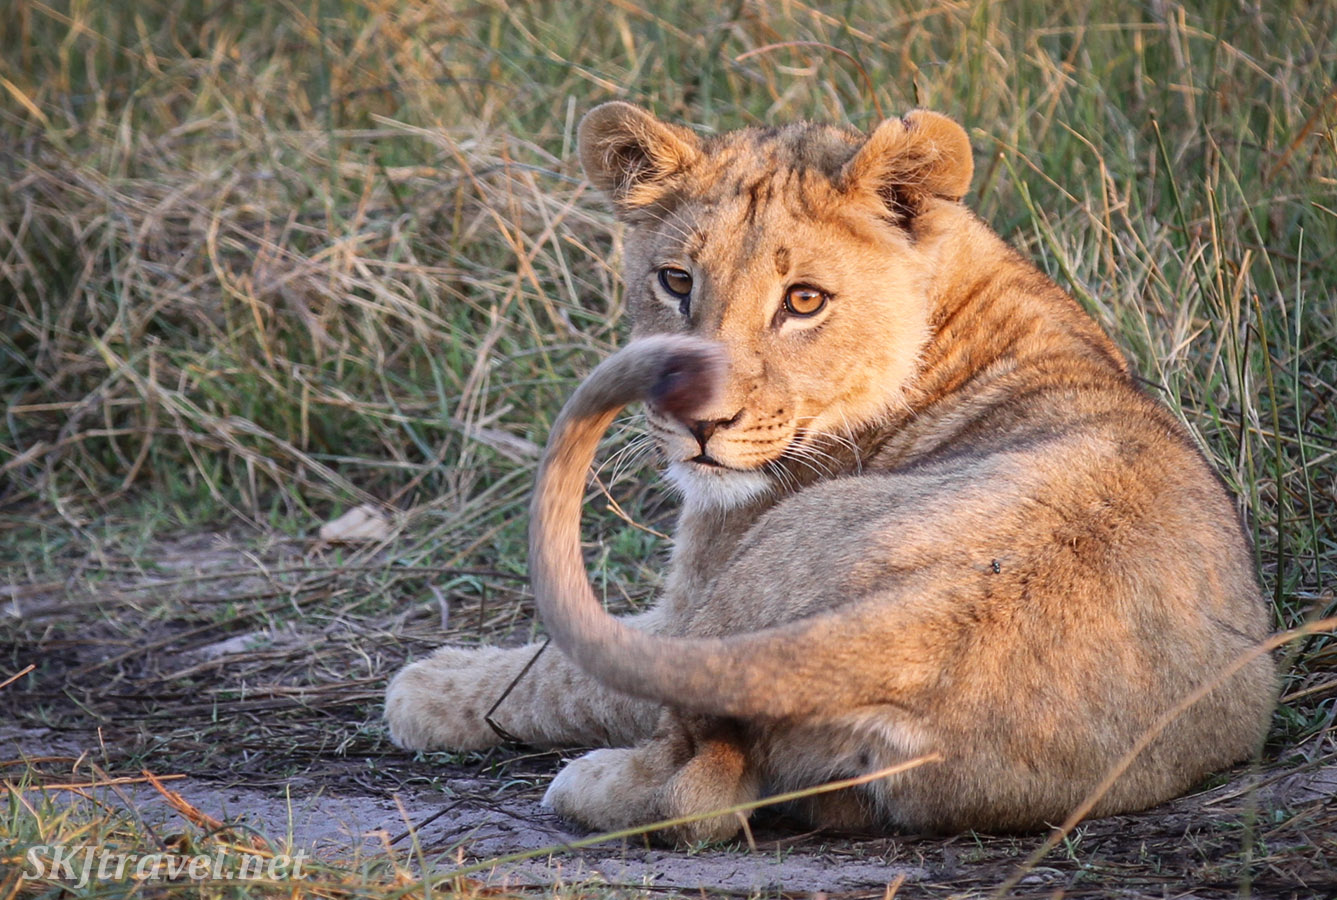 Lion cub watching his tail with interest at sunset, Khwai Concessions, Botswana.